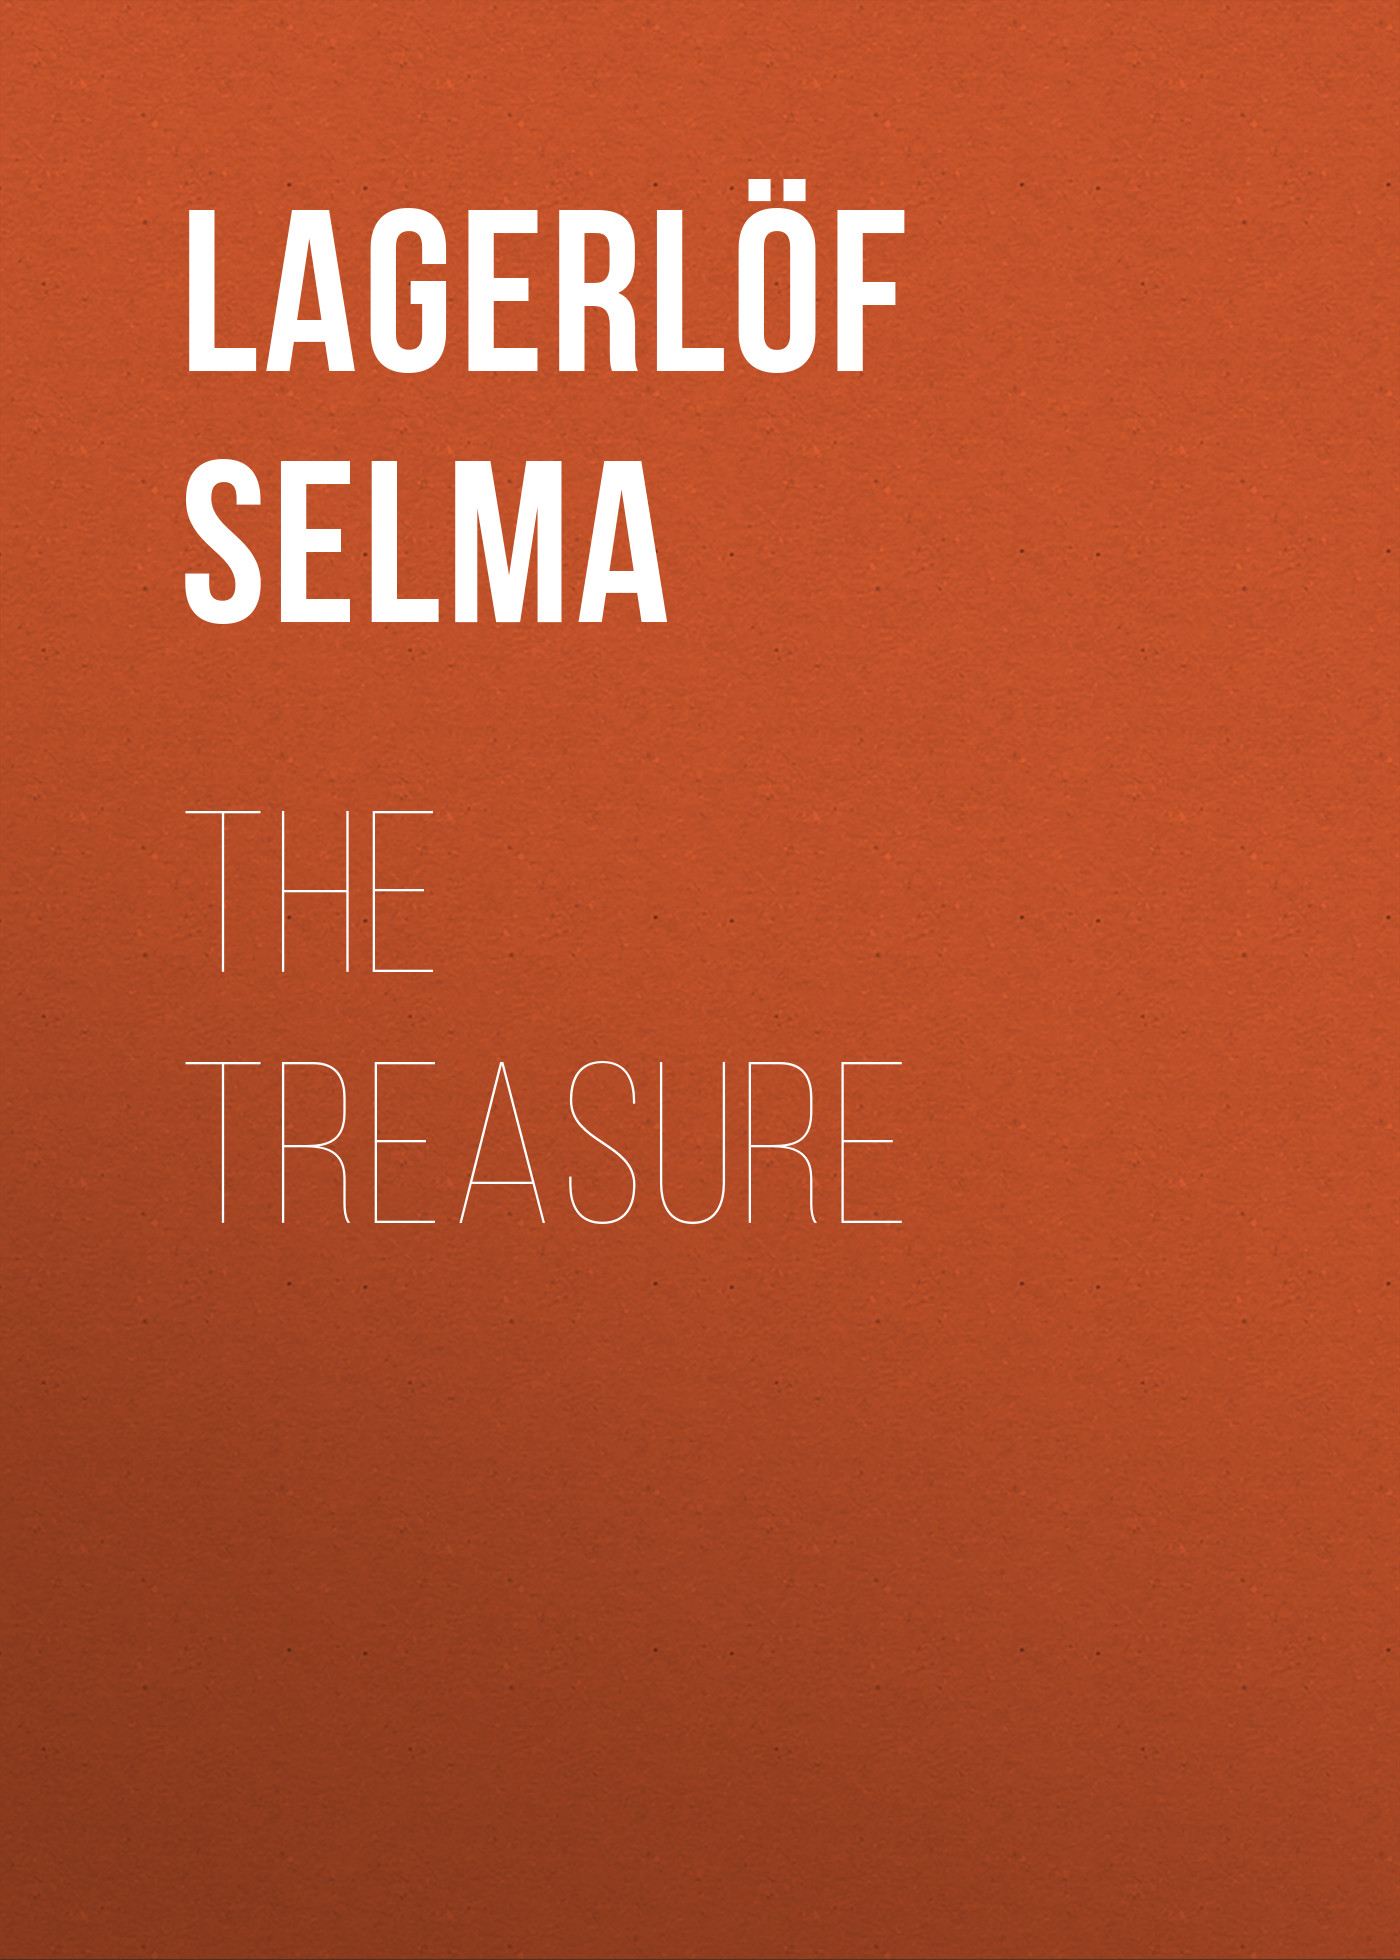 цена Lagerlöf Selma The Treasure